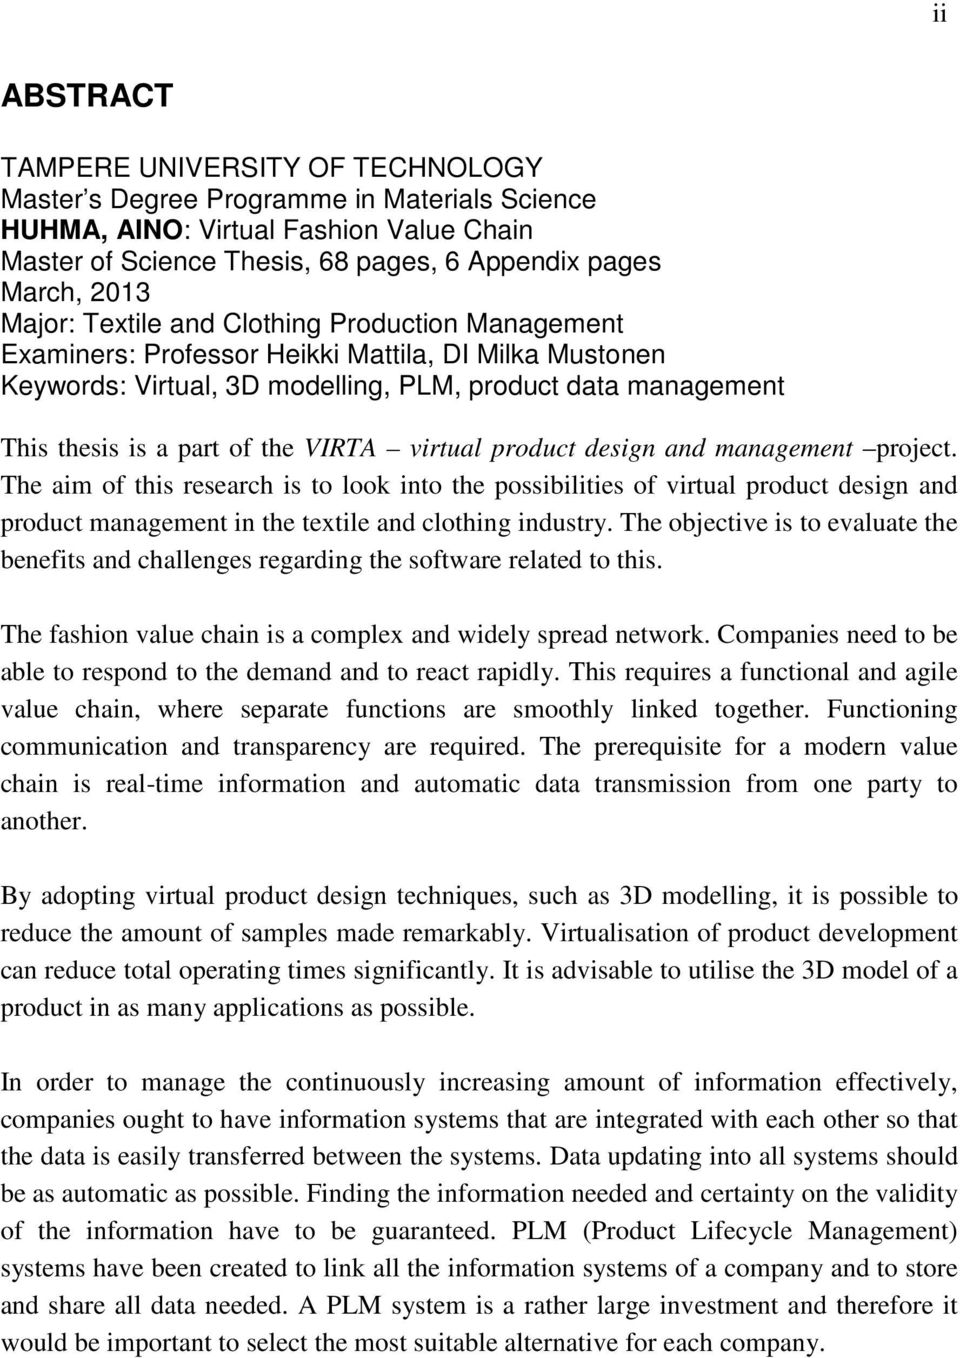 VIRTA virtual product design and management project. The aim of this research is to look into the possibilities of virtual product design and product management in the textile and clothing industry.